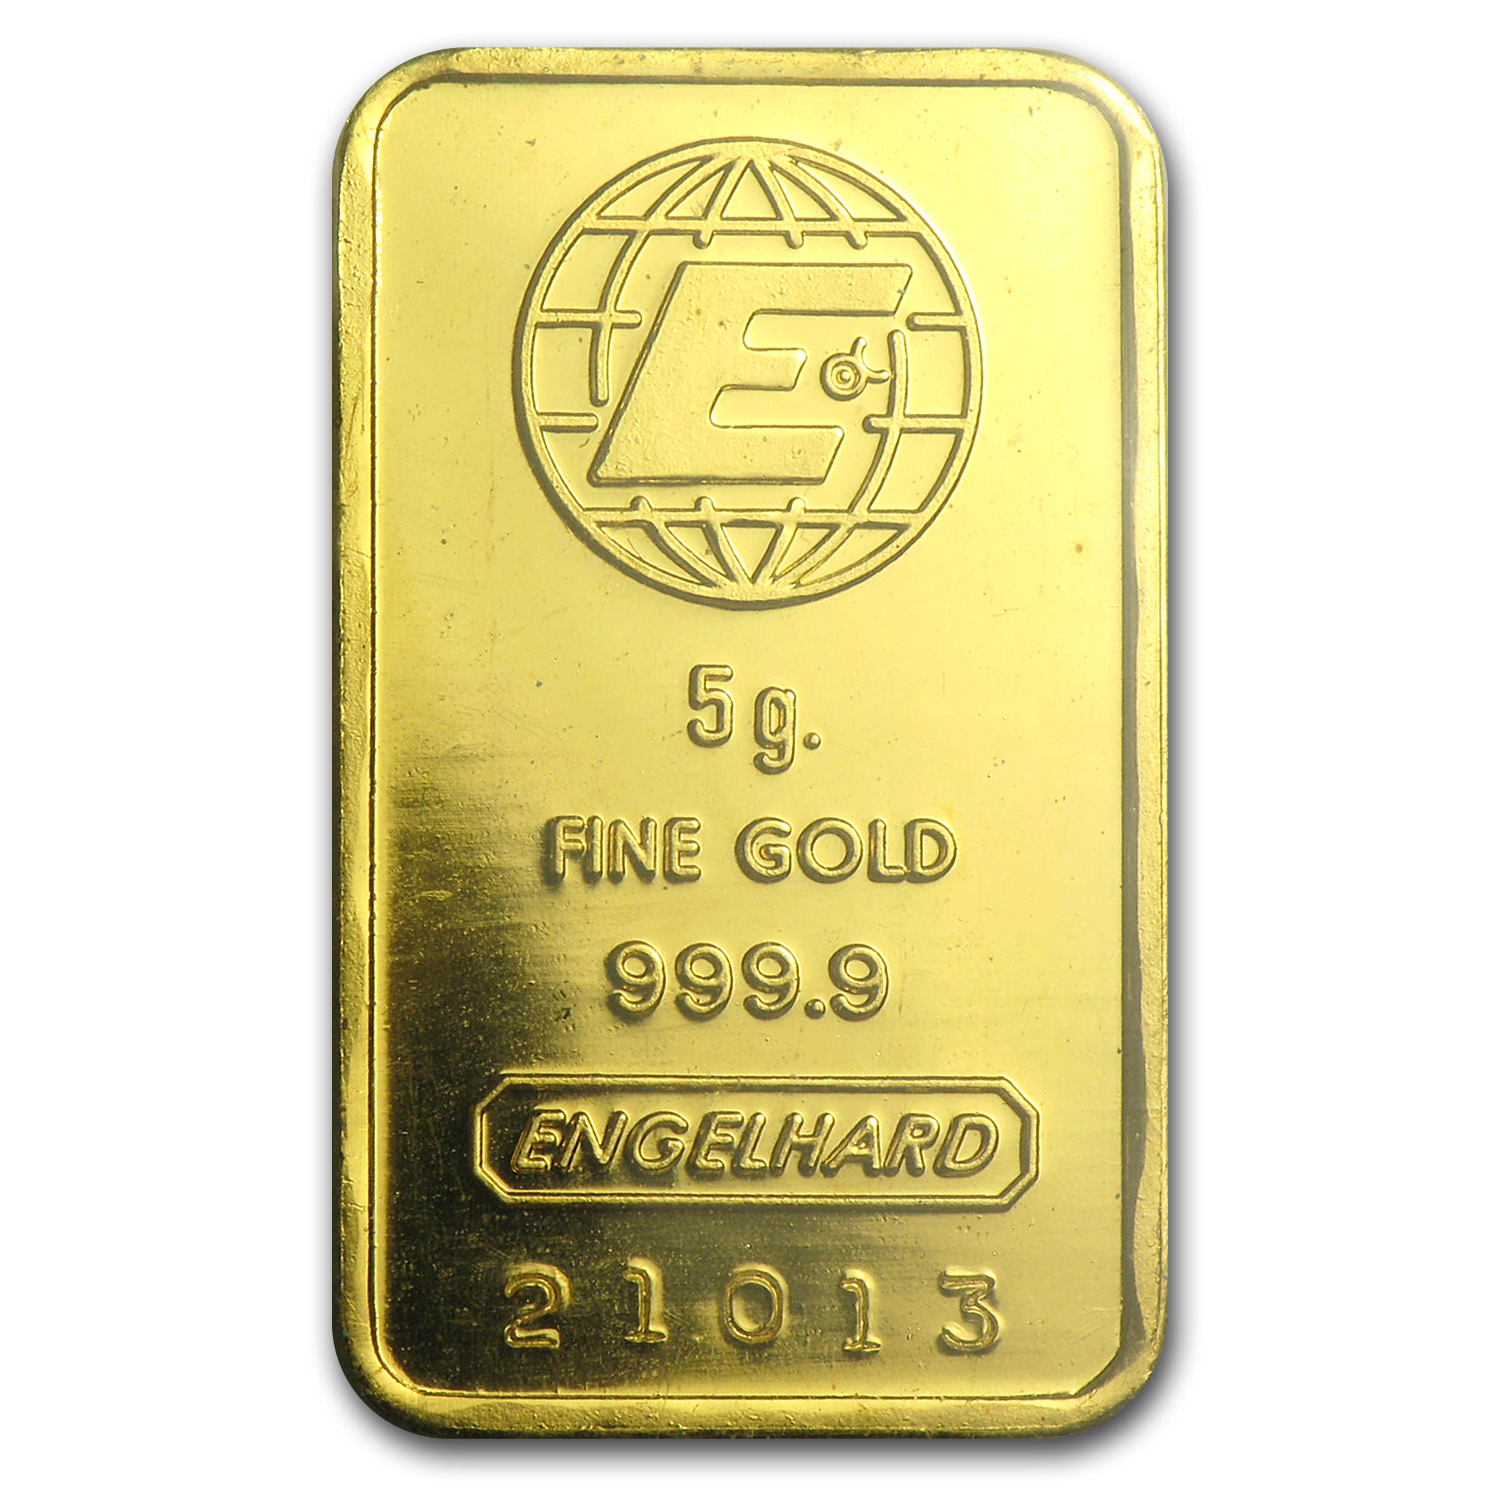 5 gram Gold Bar - Engelhard (In Assay Card)